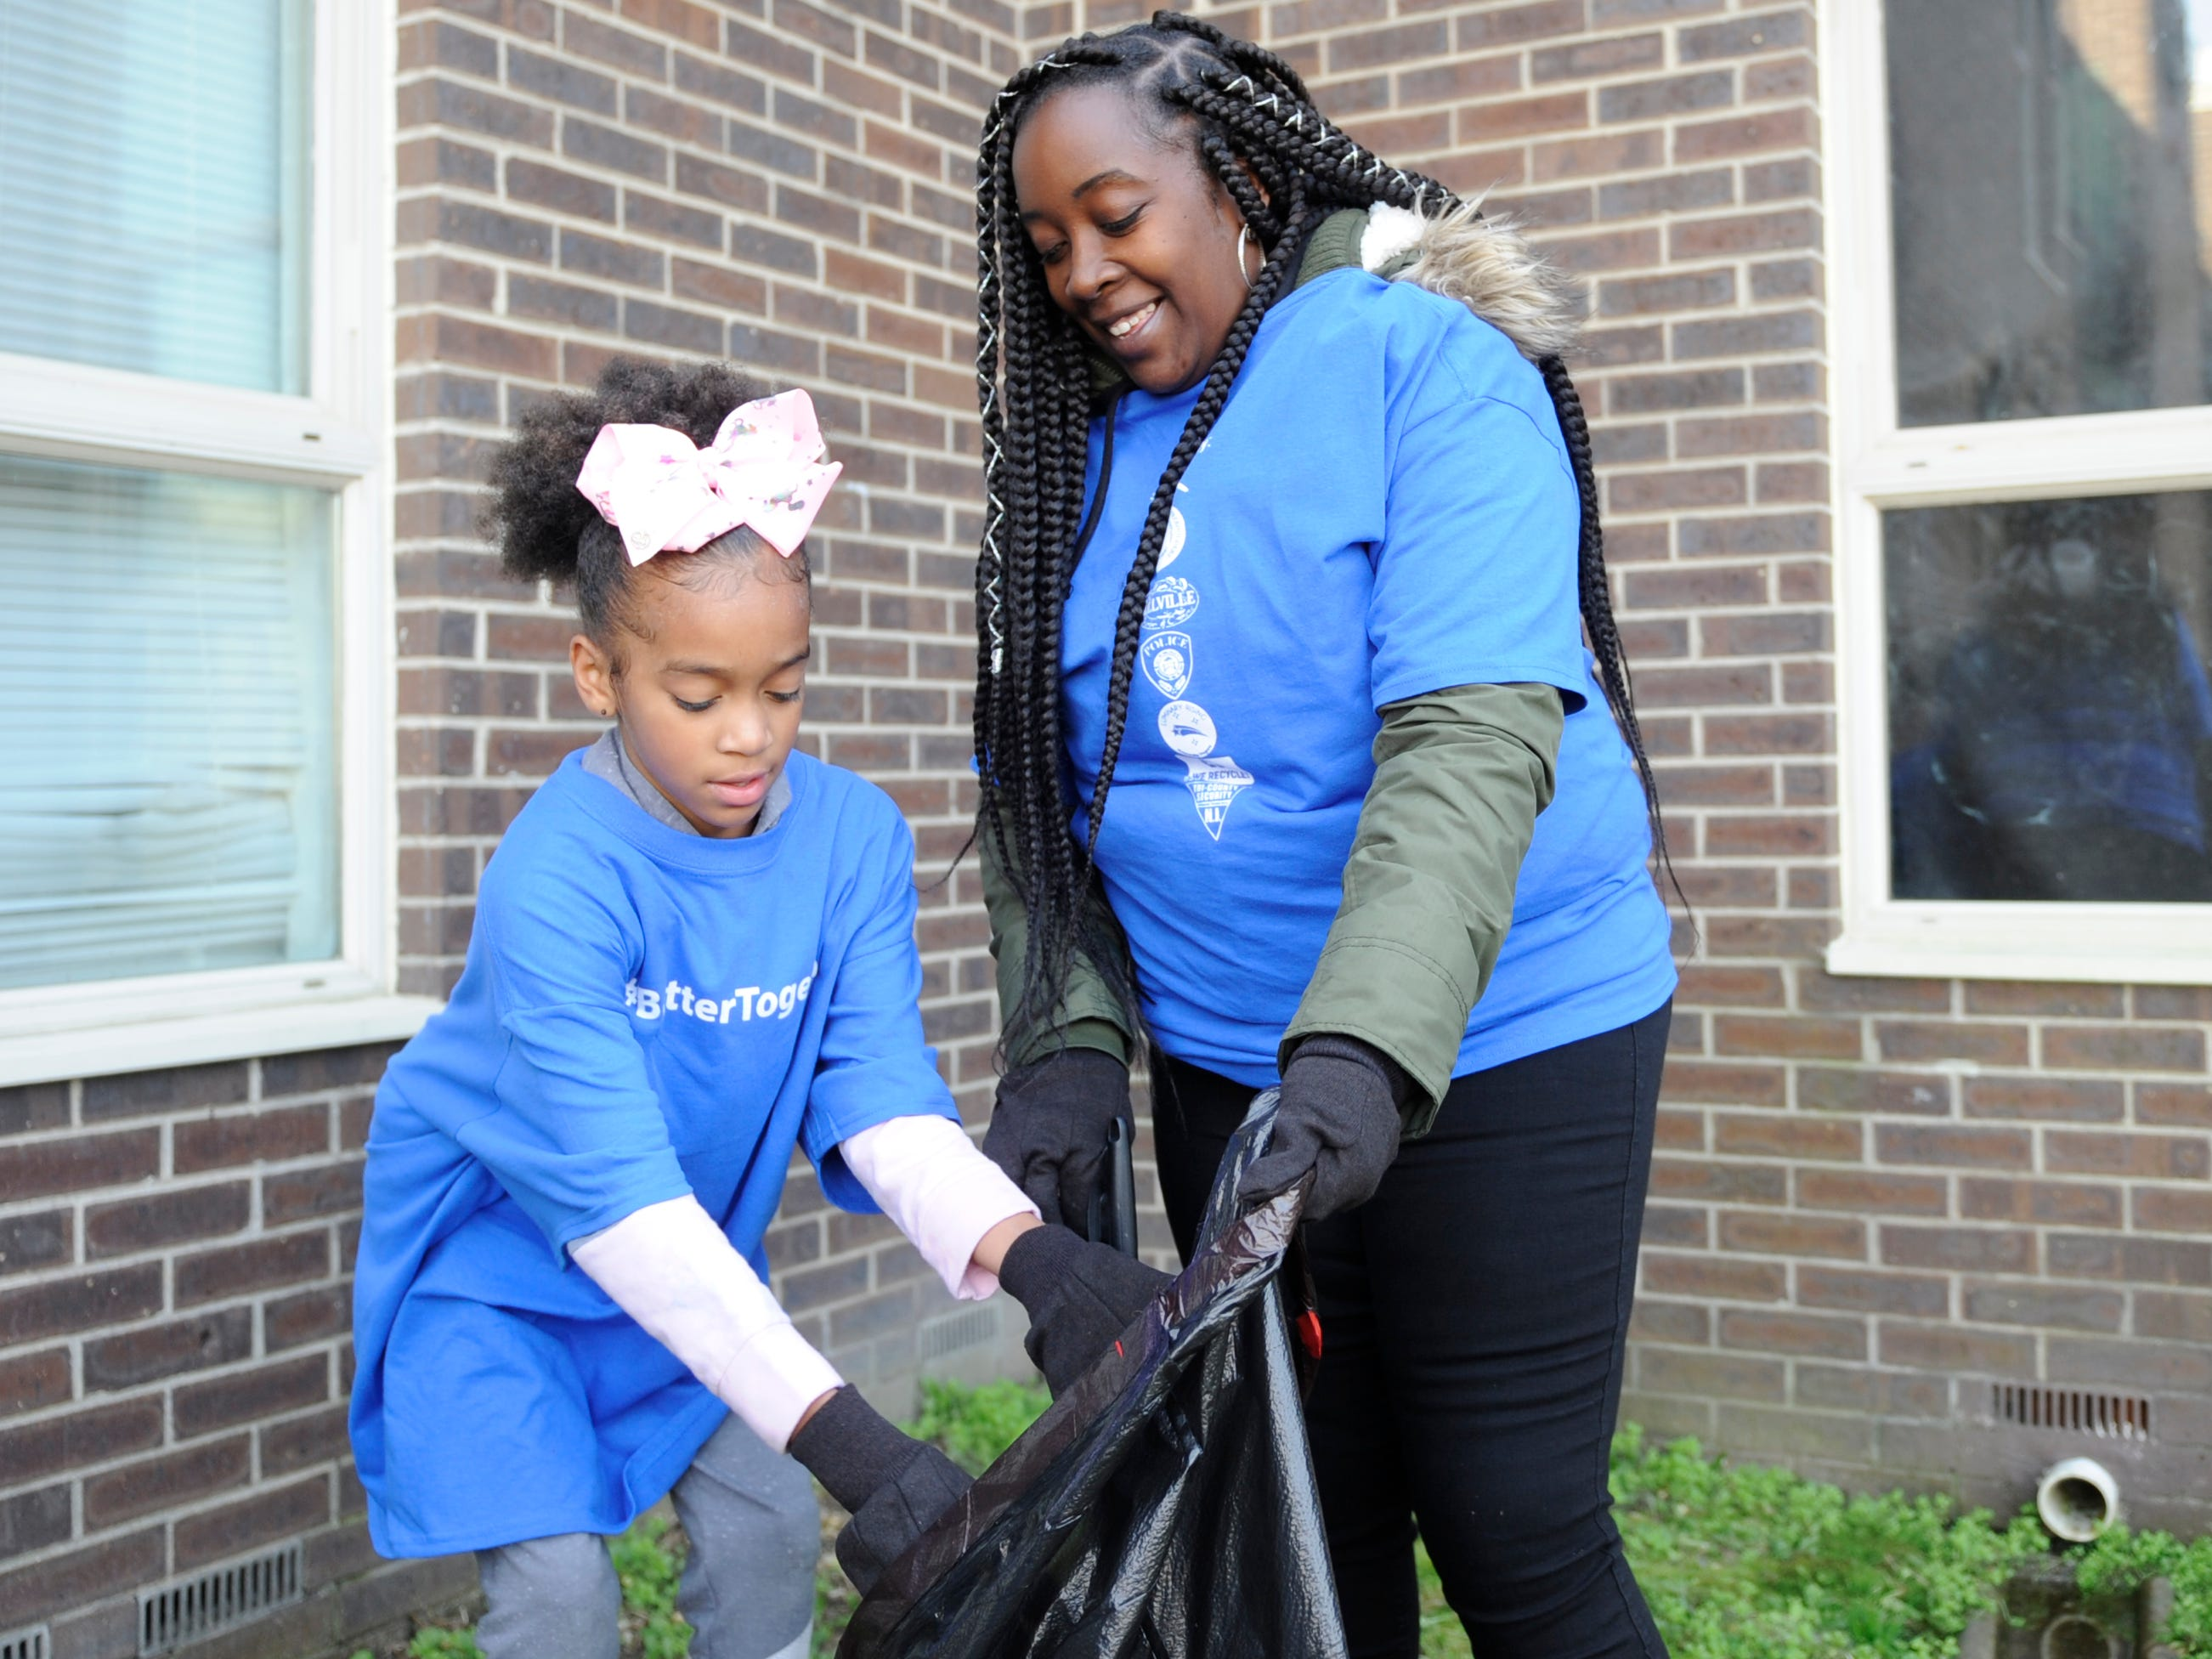 Oakview Apartments residents Dena Alsobrook (right) and daughter Miyasiah, 10, help with the  clean up efforts during a community event.